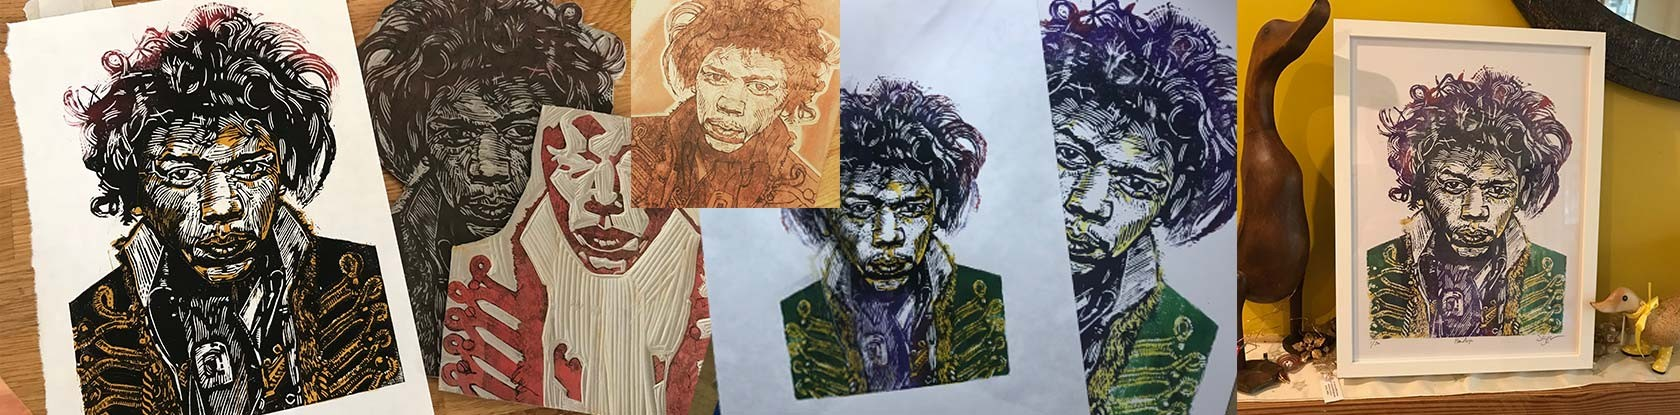 Images of the lino used to create the final Hendrix print